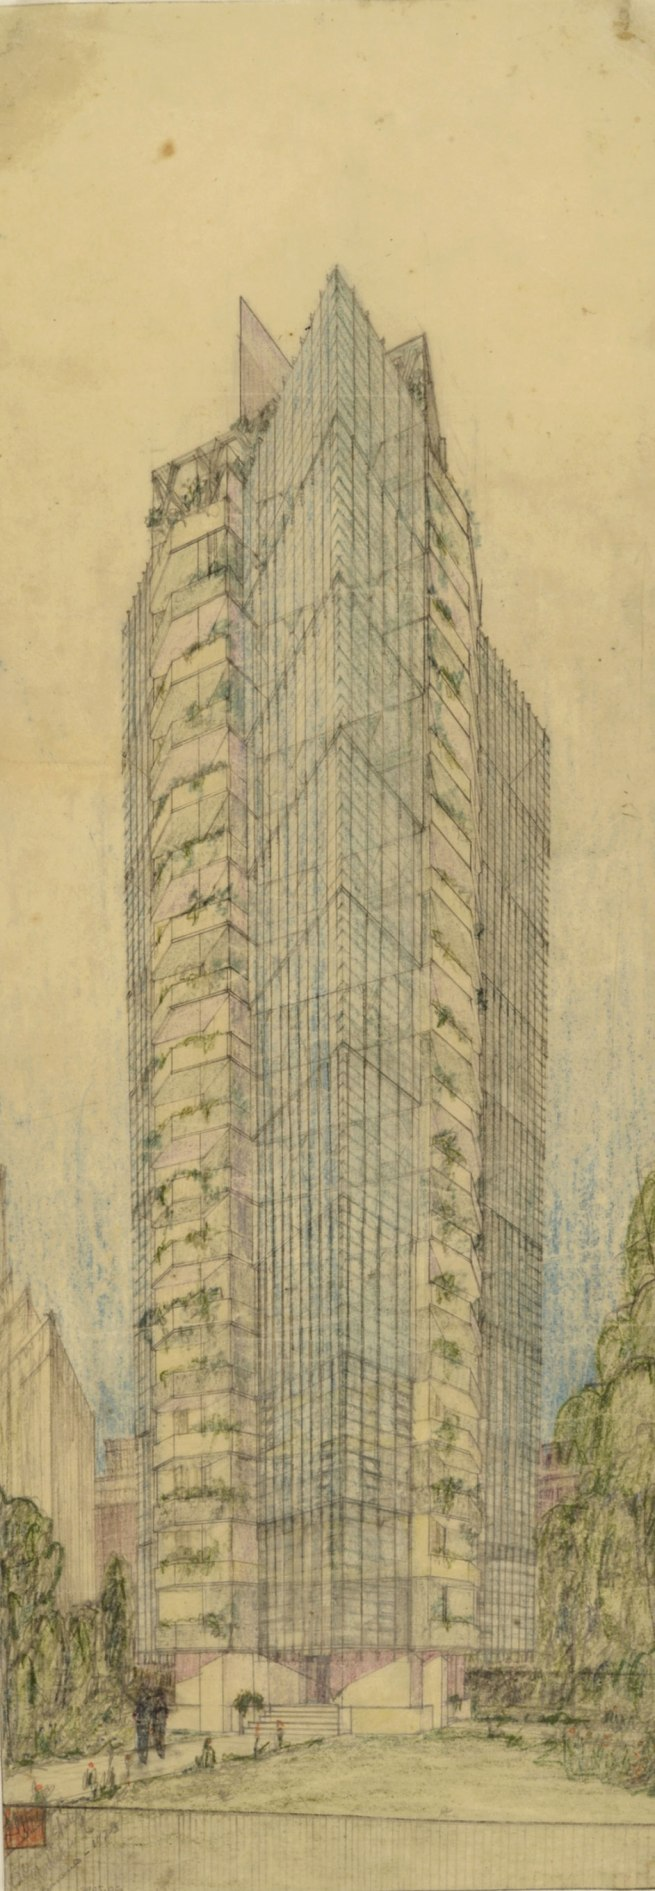 Frank Lloyd Wright (American, 1867-1959) 'St. Mark's-in-the-Bouwerie Tower, New York Project' 1927-31